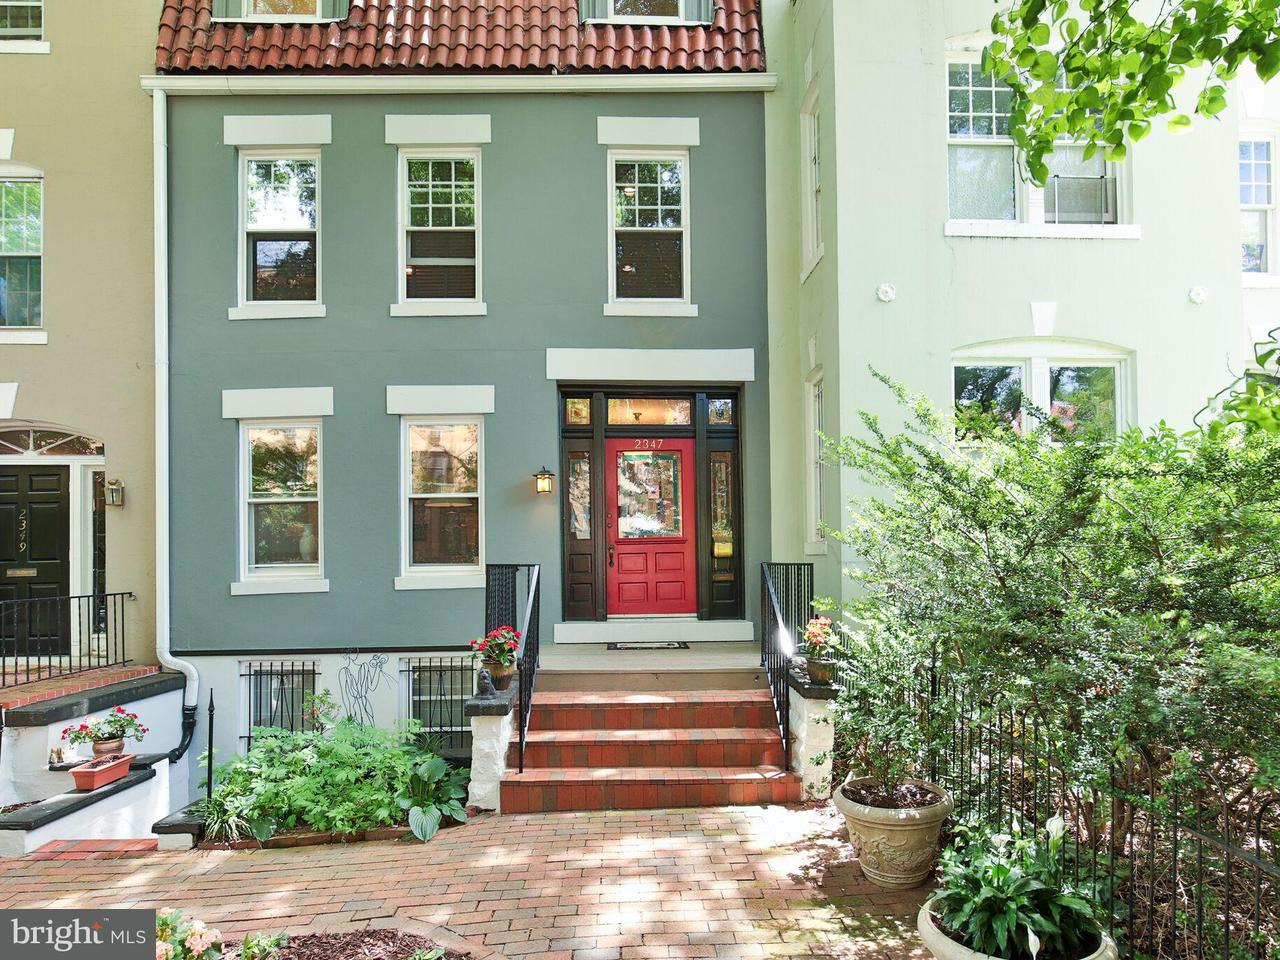 Townhouse for Sale at 2347 Ashmead Pl Nw 2347 Ashmead Pl Nw Washington, District Of Columbia 20009 United States